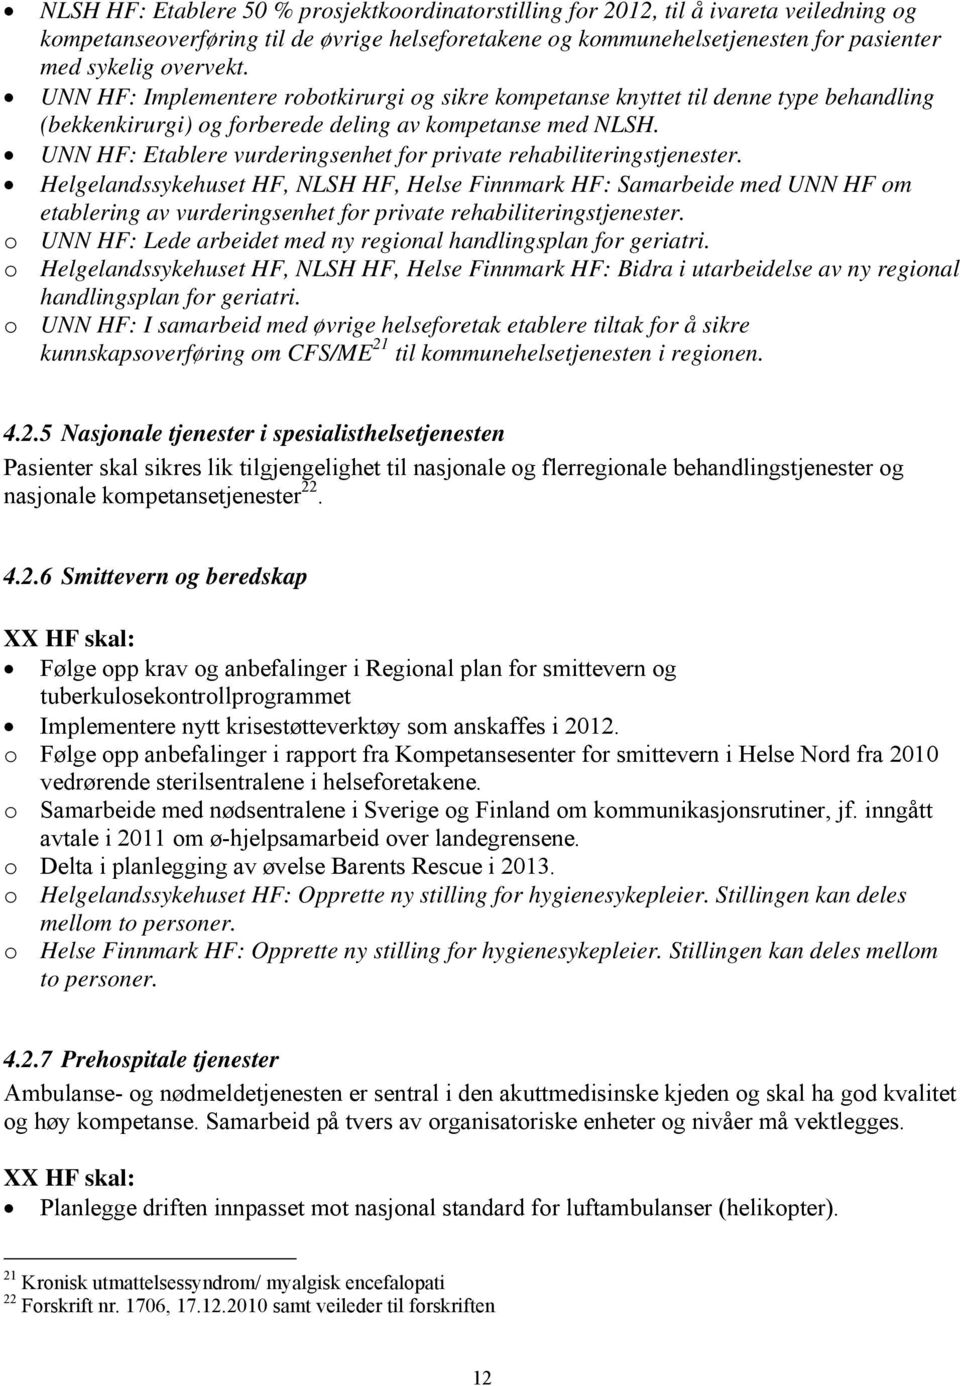 UNN HF: Etablere vurderingsenhet for private rehabiliteringstjenester.